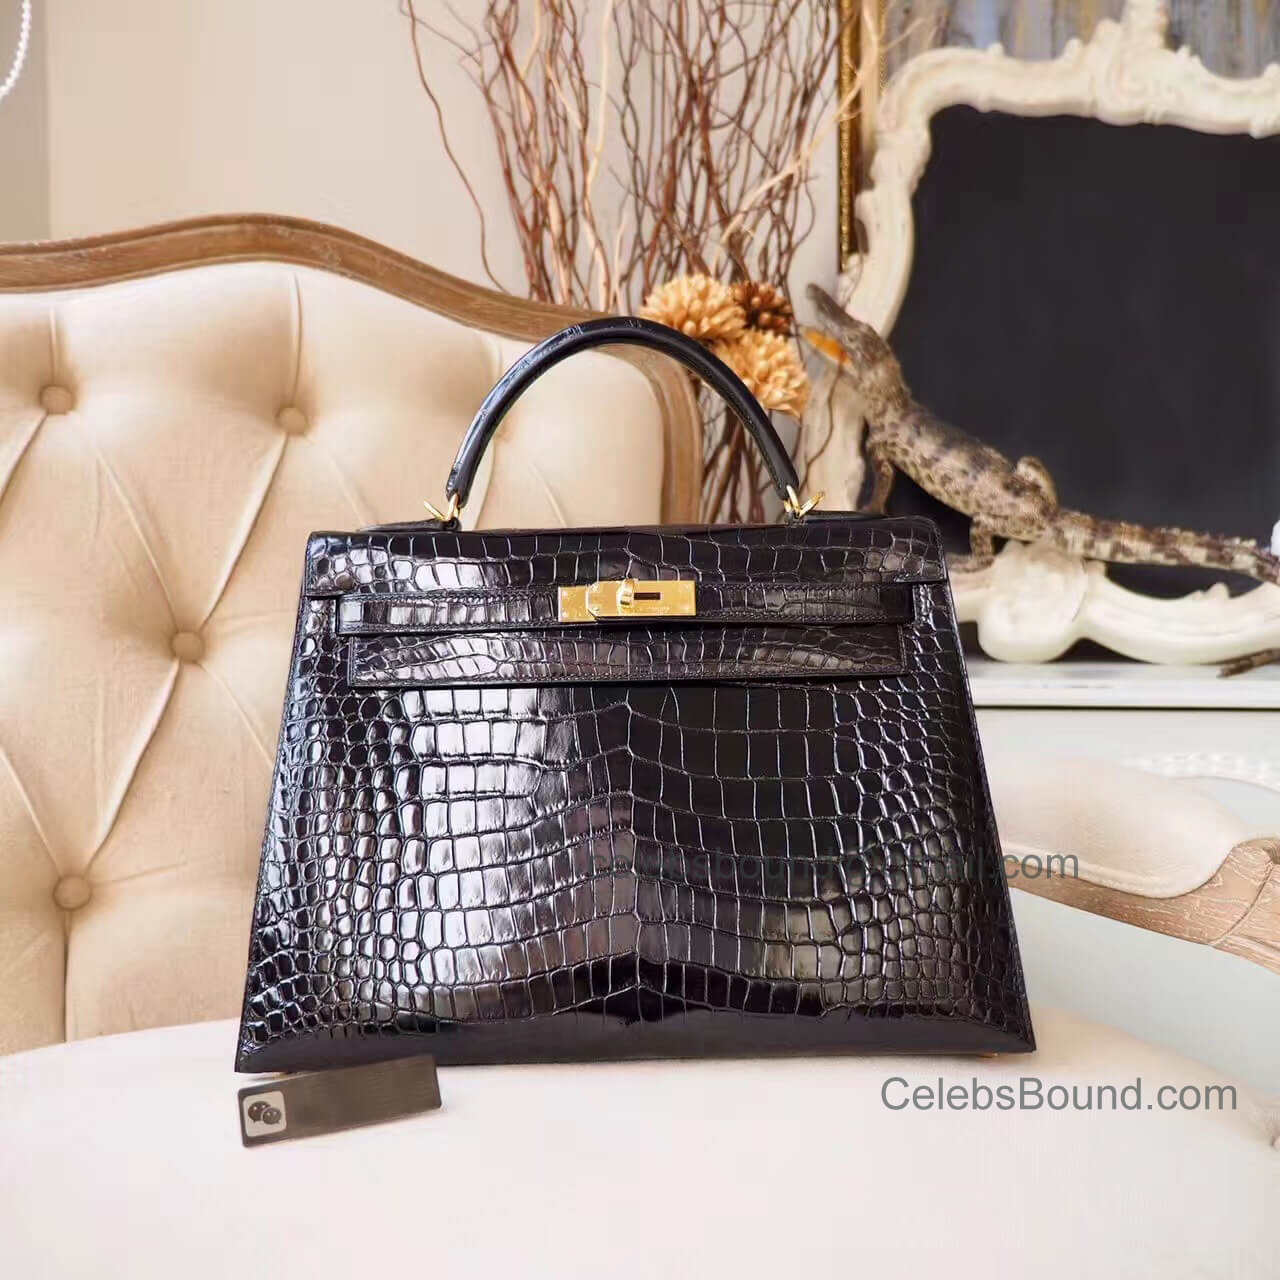 Replica Hermes Kelly 32 Bag in ck89 Noir Shiny Porosus Croc GHW